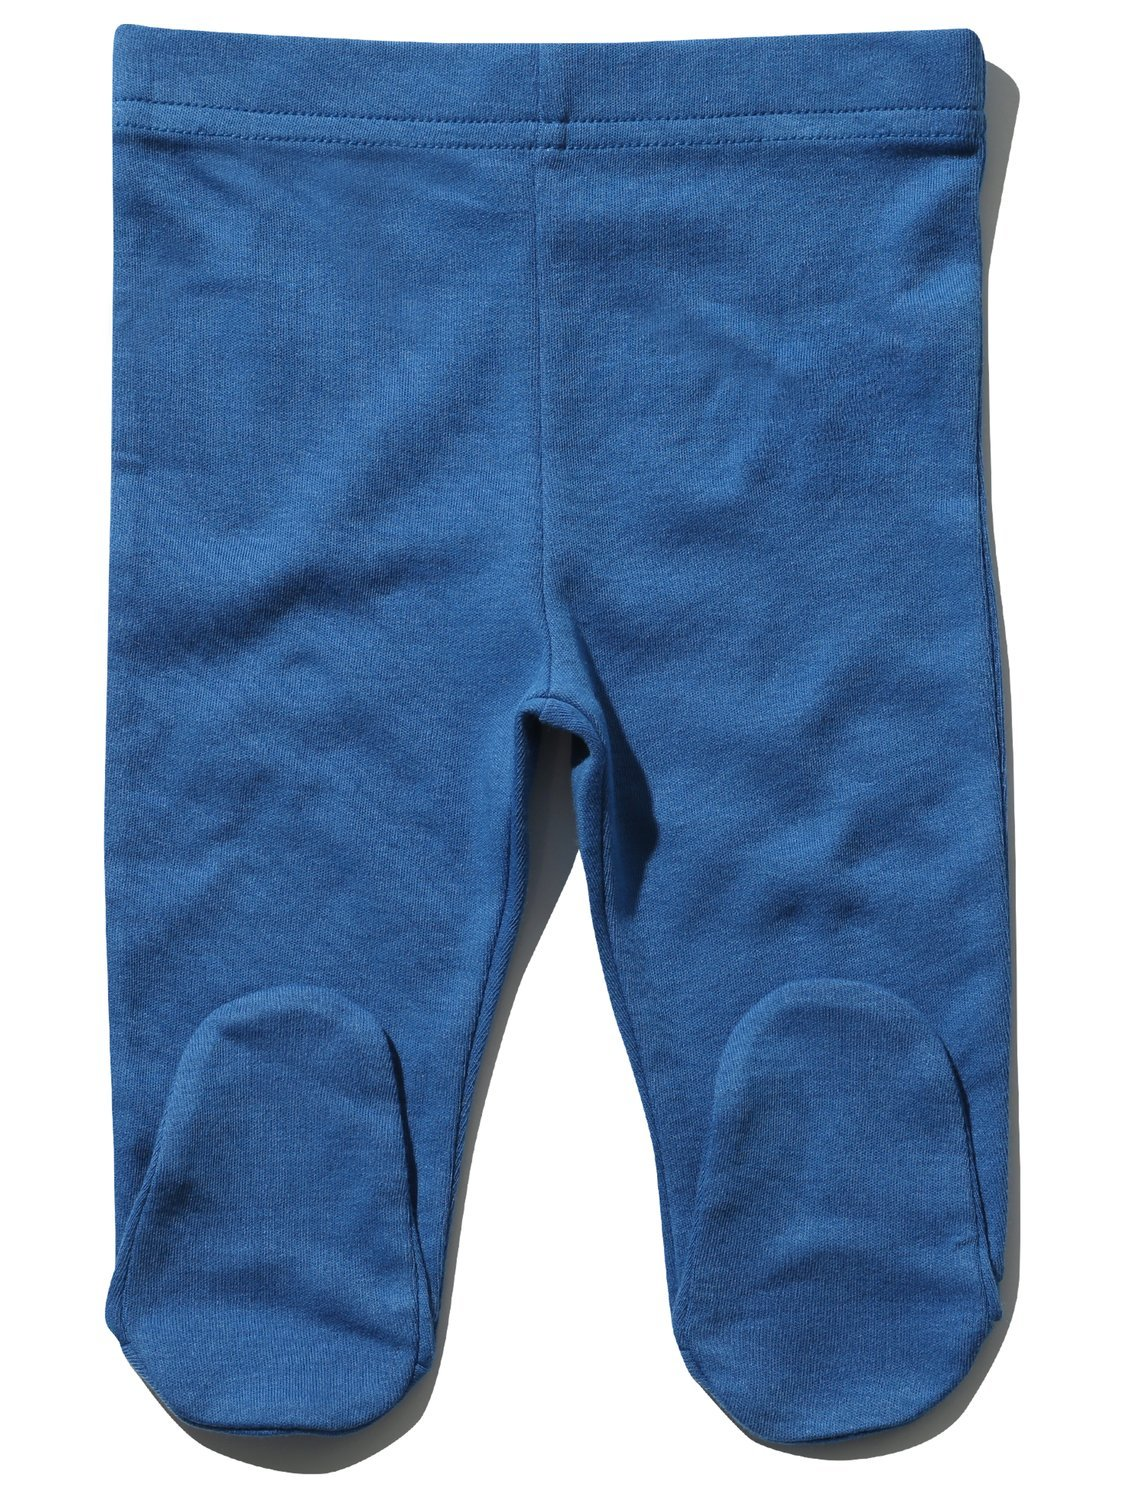 M& Co Newborn Boy 100% Cotton Plain Blue Stretch Waist Enclosed Feet Joggers